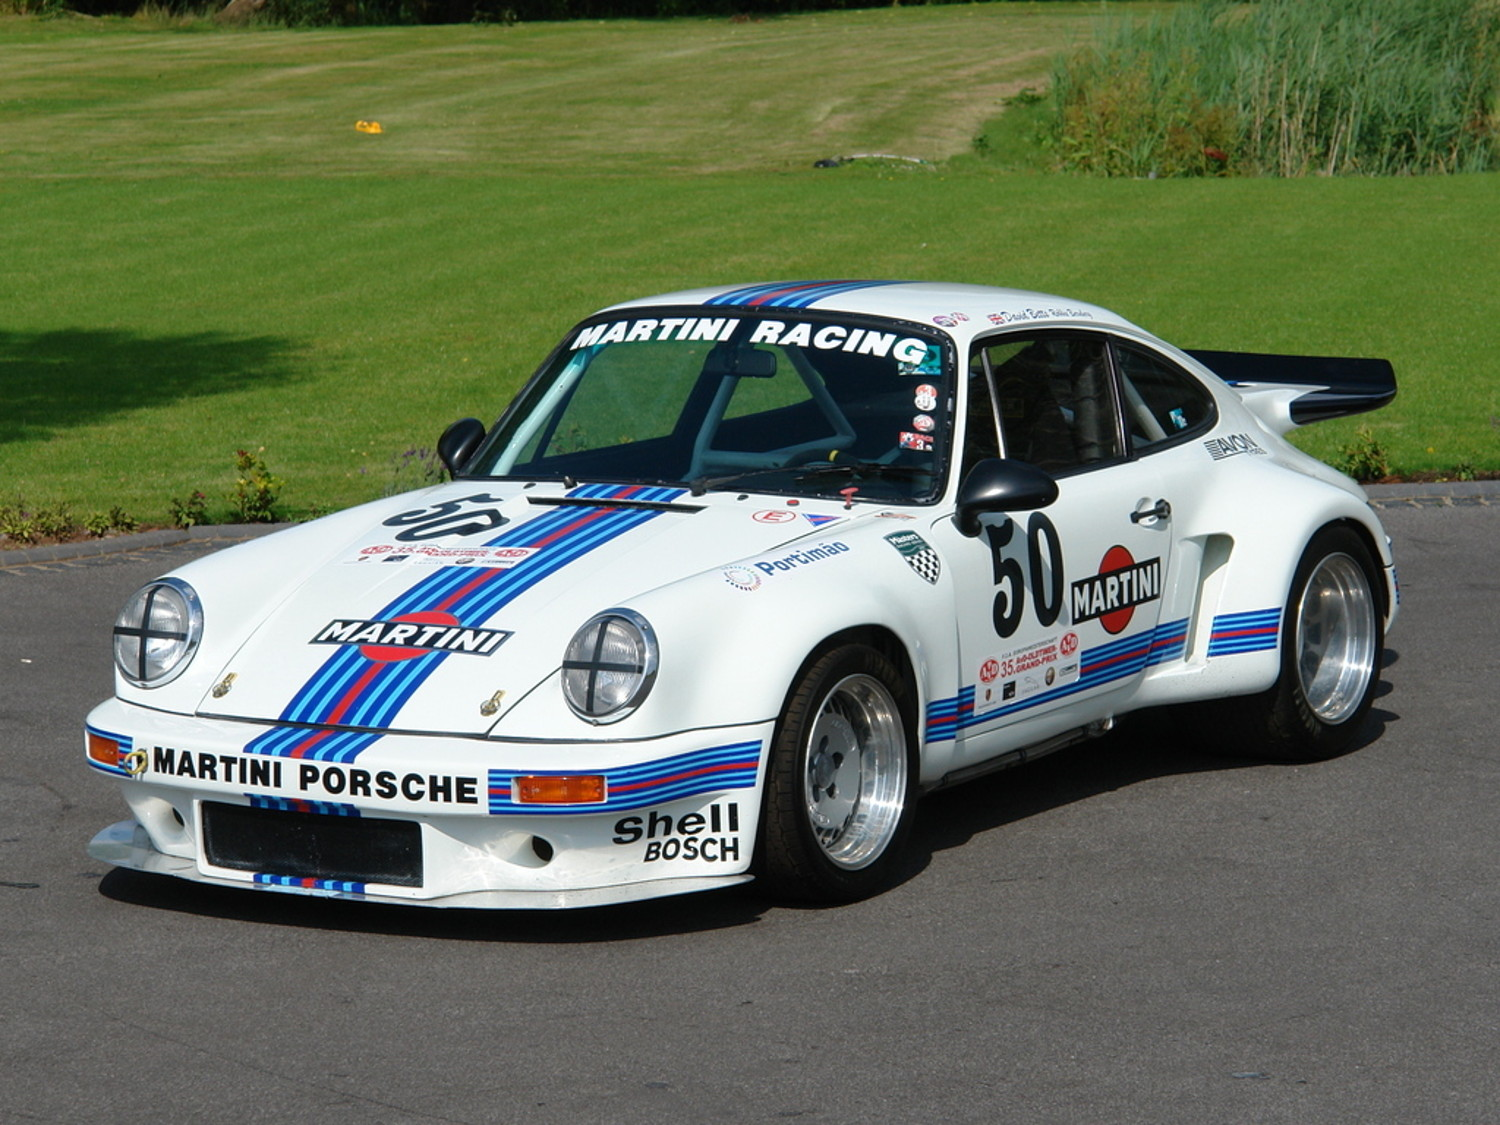 1974 Porsche 911 Race Car For Sale In The Uk Motrolix